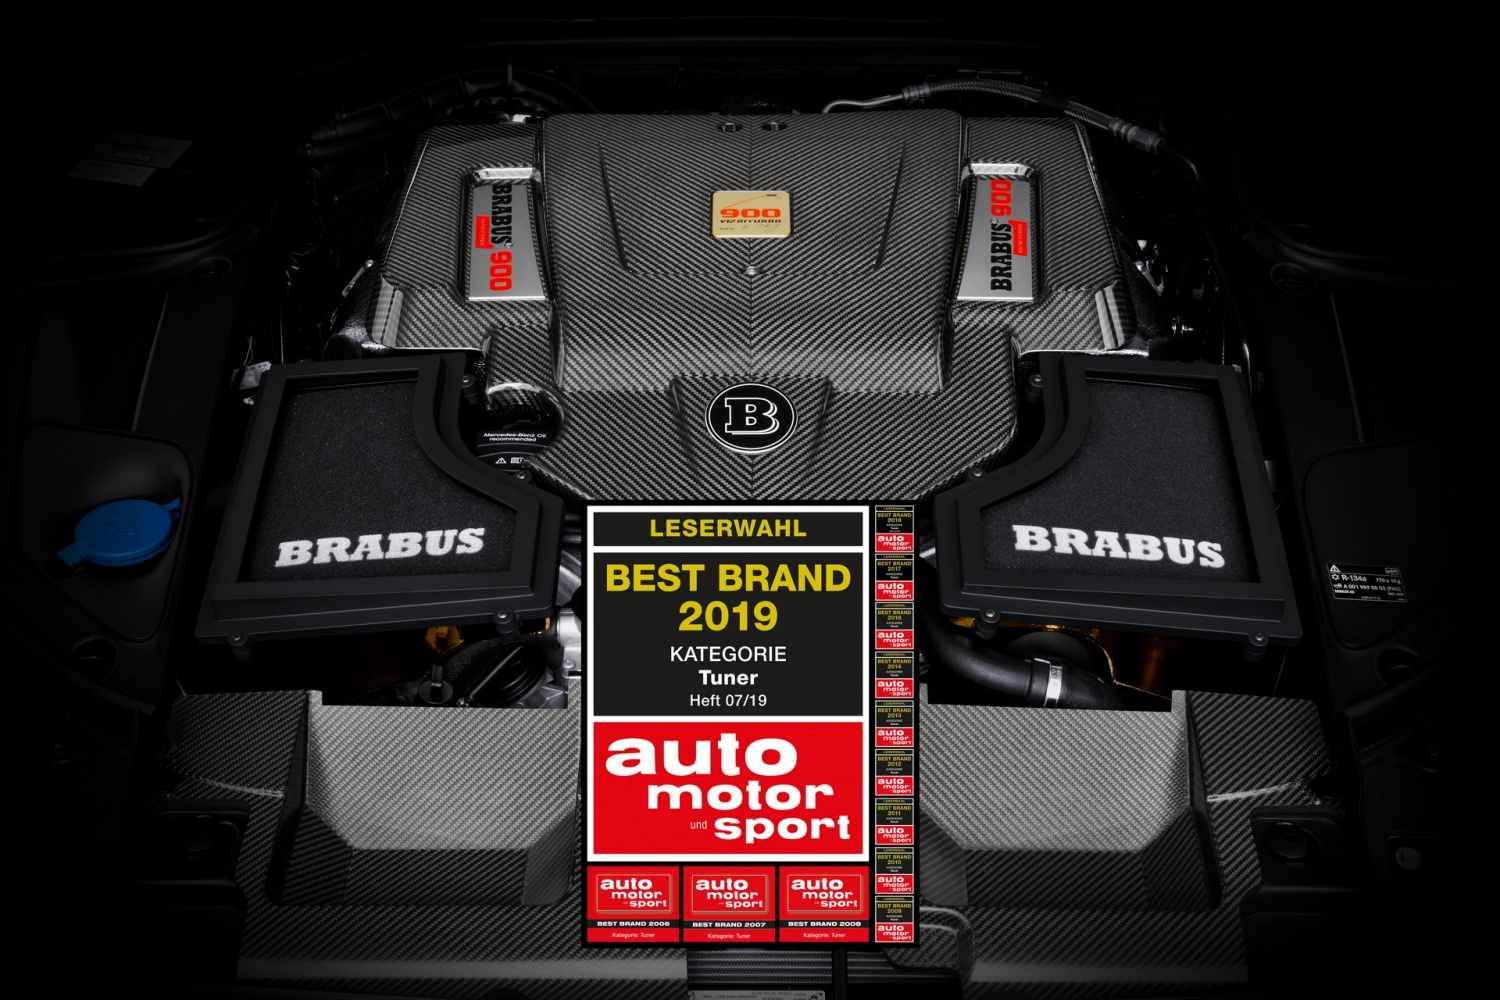 BRABUS The BEST BRAND 2019